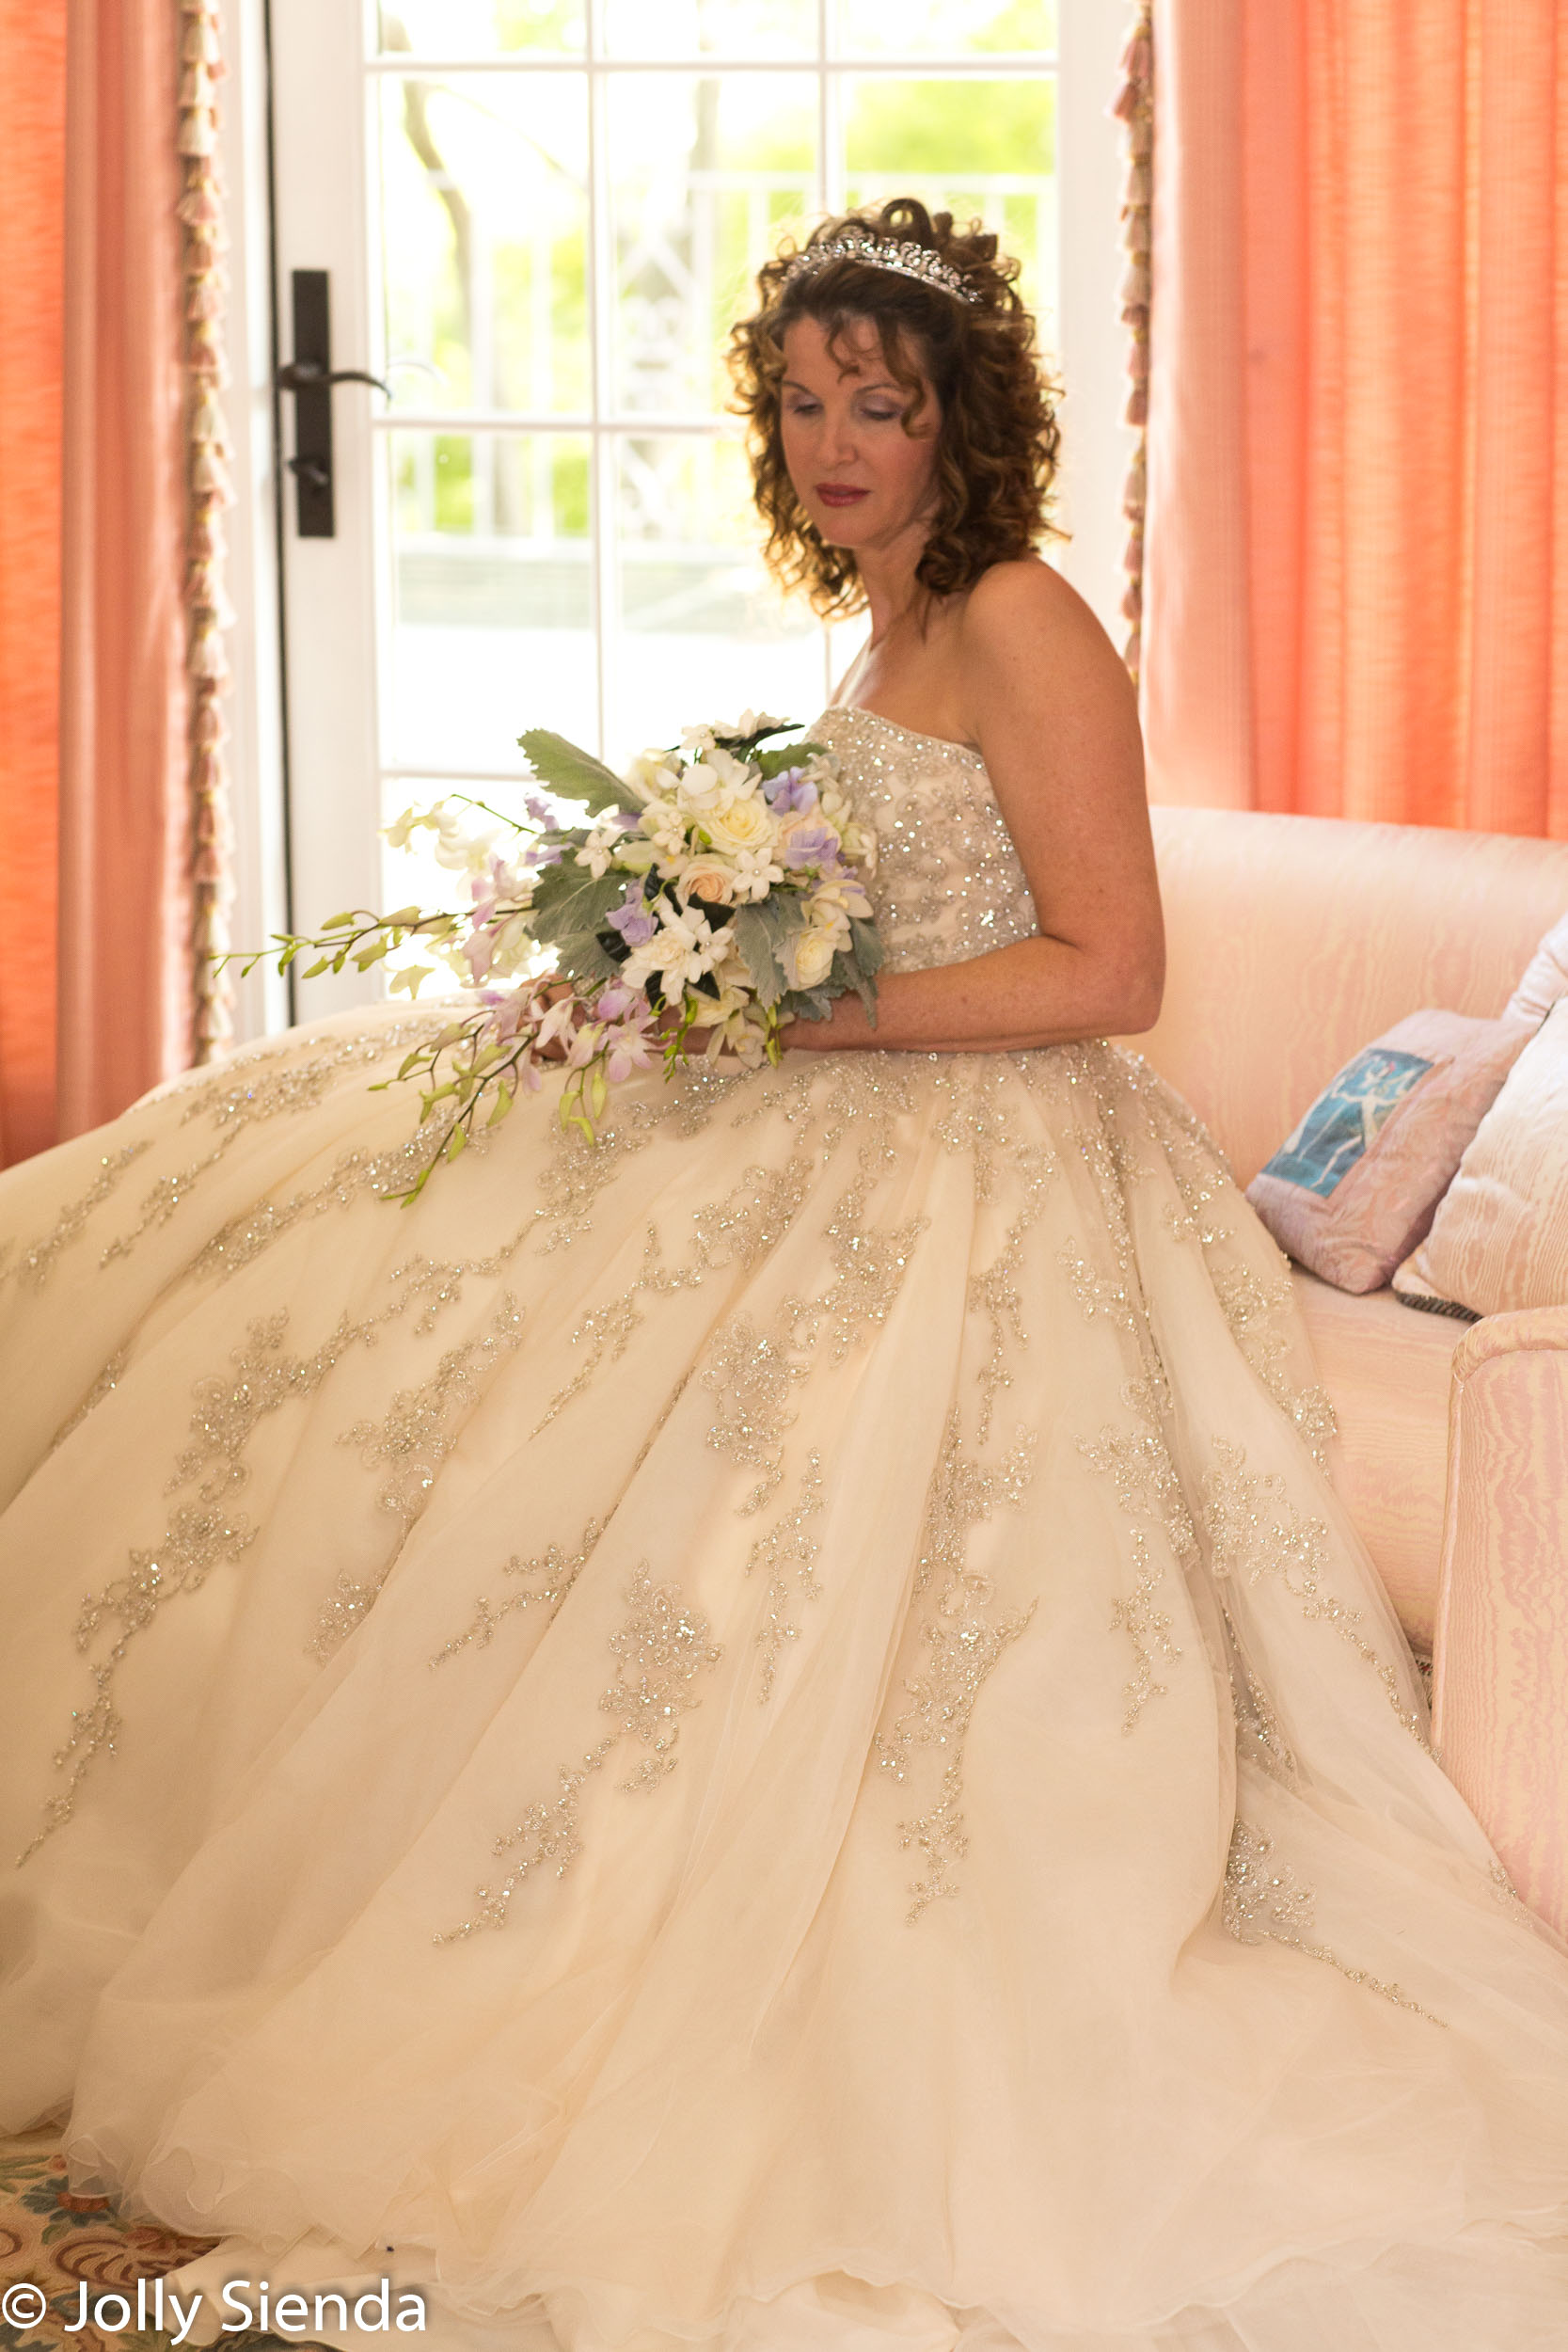 Quite moment for a bride in her wedding dress holding her bouque